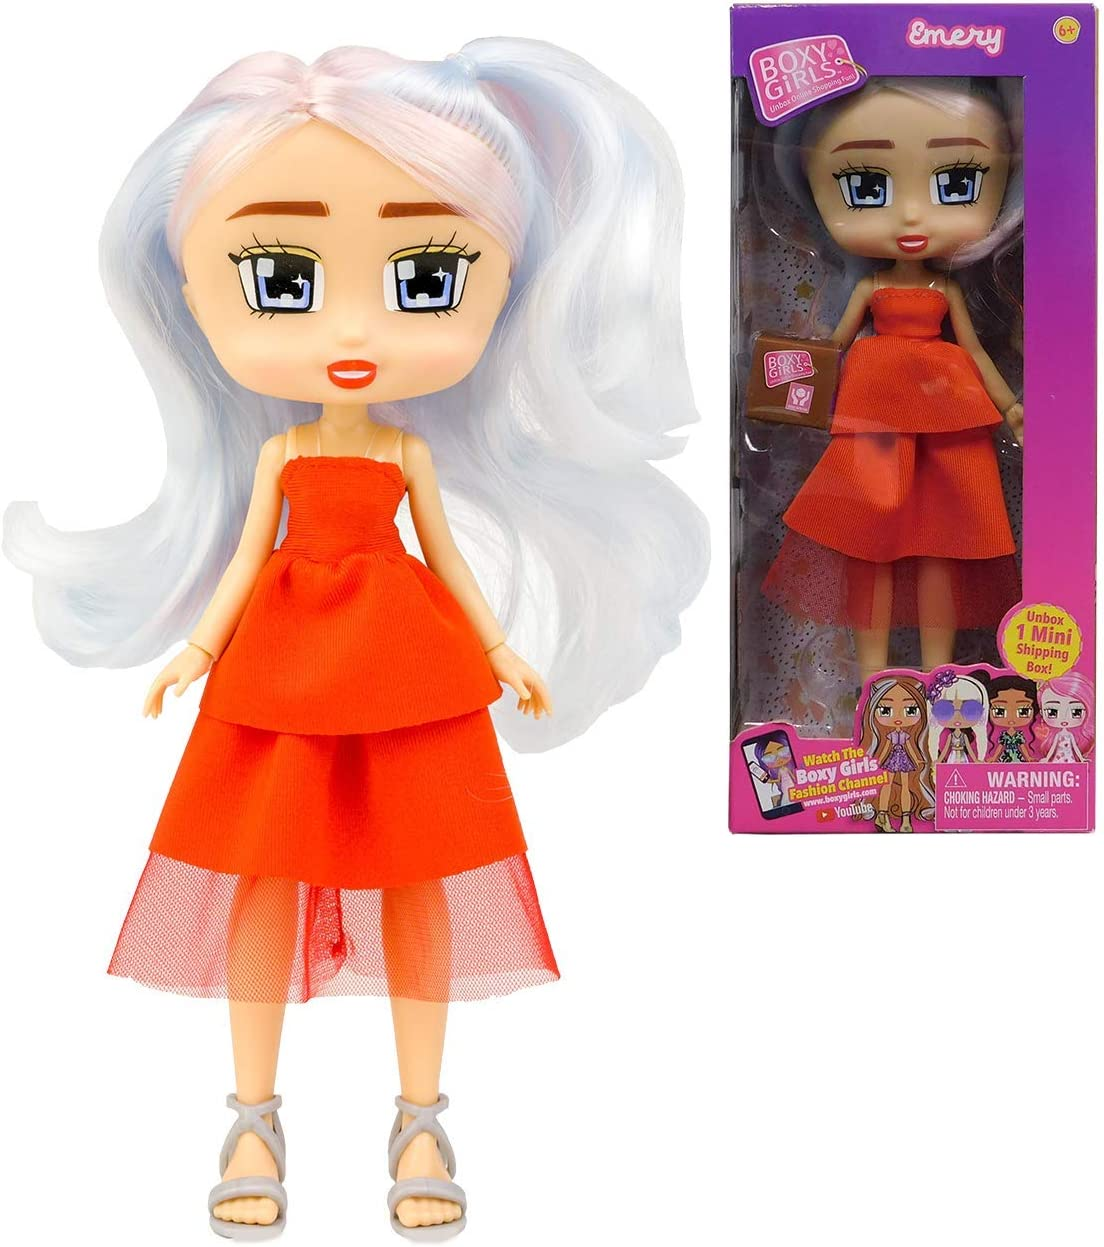 Boxy Girls Emery - Girls Fashion Doll with One 1 Mini Mystery Box